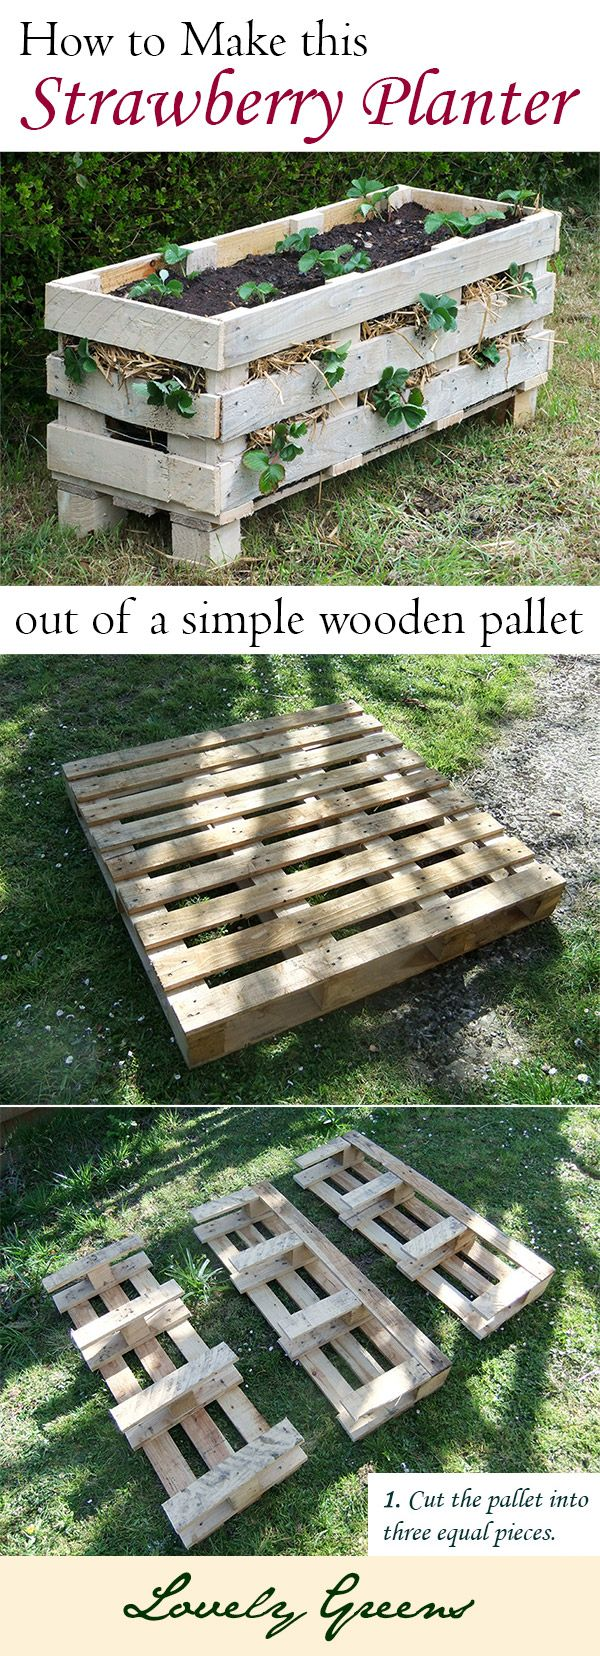 Strawberry Pallet Planter - A practical DIY tutorial showing how to make this strawberry planter out of a single pallet. The project is fairly easy and not too many tools required to make your own attractive planter. 20 more creative pallet projects for your garden @ http://themicrogardener.com/20-creative-ways-to-upcycle-pallets-in-your-garden/ | The Micro Gardener